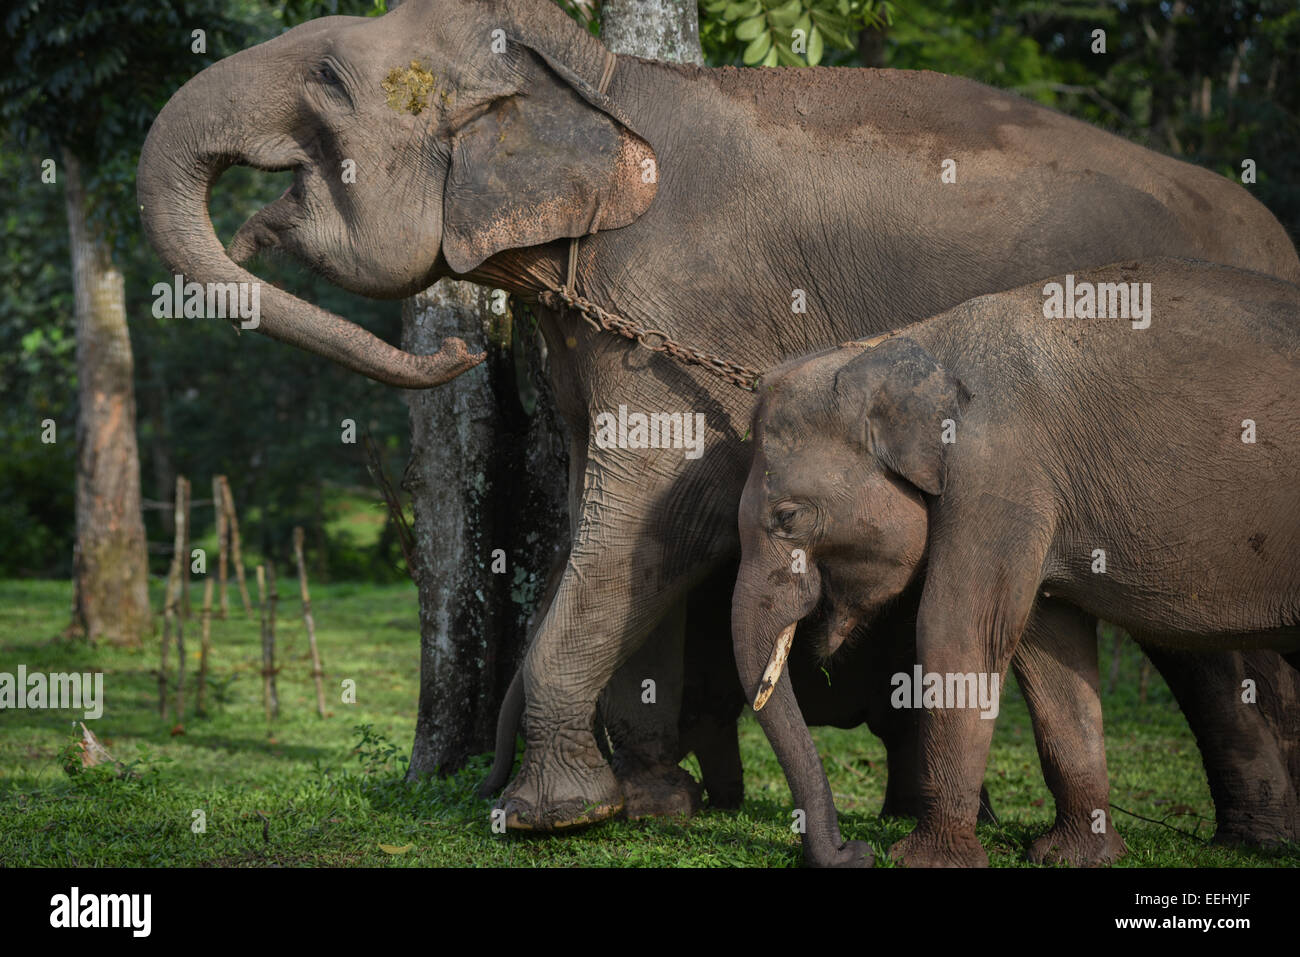 Les éléphants adultes et juvéniles dans le Parc National de Way Kambas, Indonésie. Photo Stock